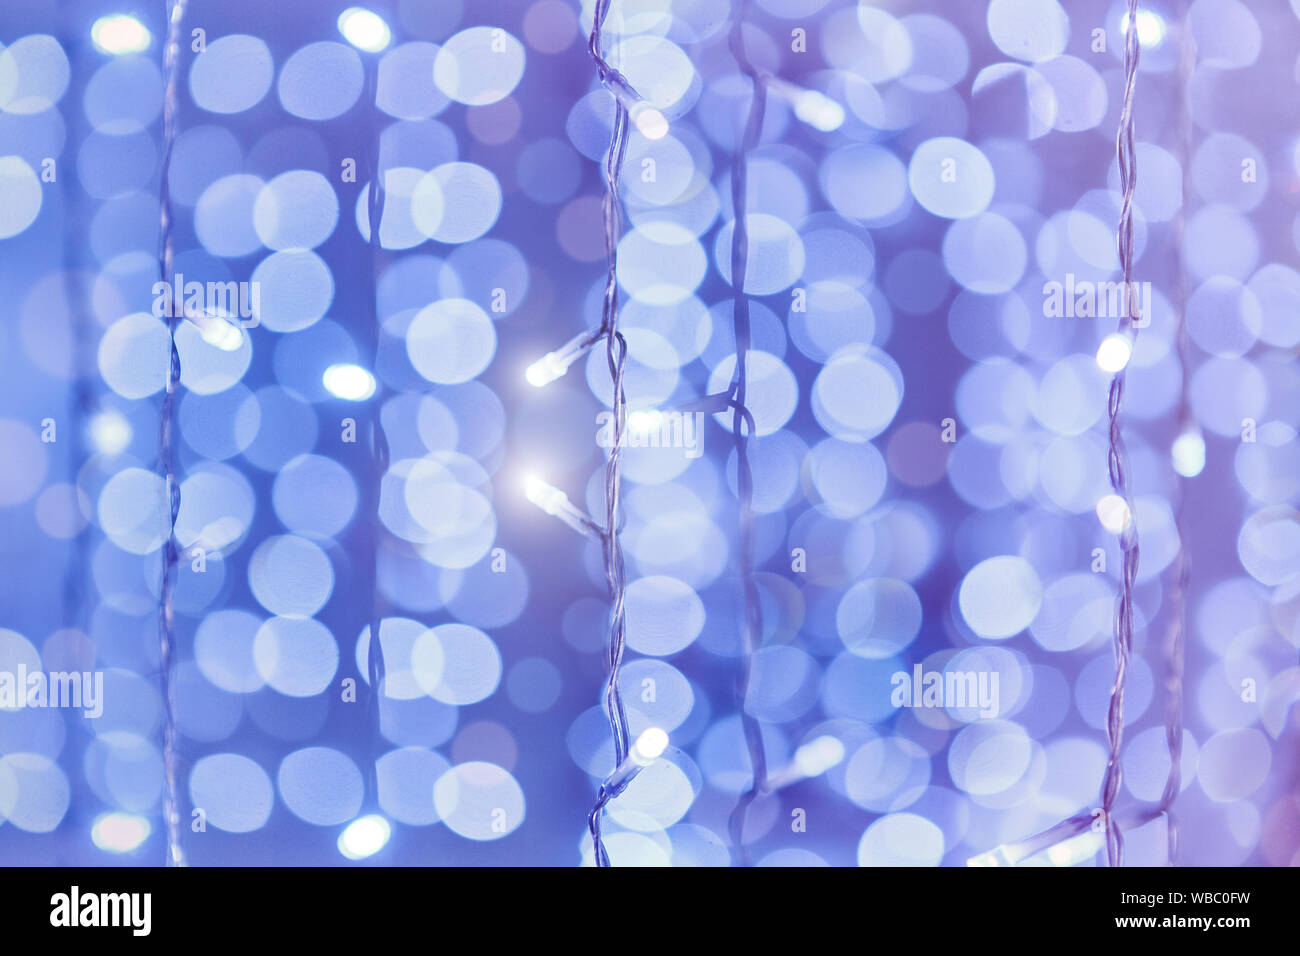 Soft colorful bokeh background. Luminous garlands of electric lights. Copy space to add text. Saturated colors. Blurry abstraction. Gentle tone. Stock Photo